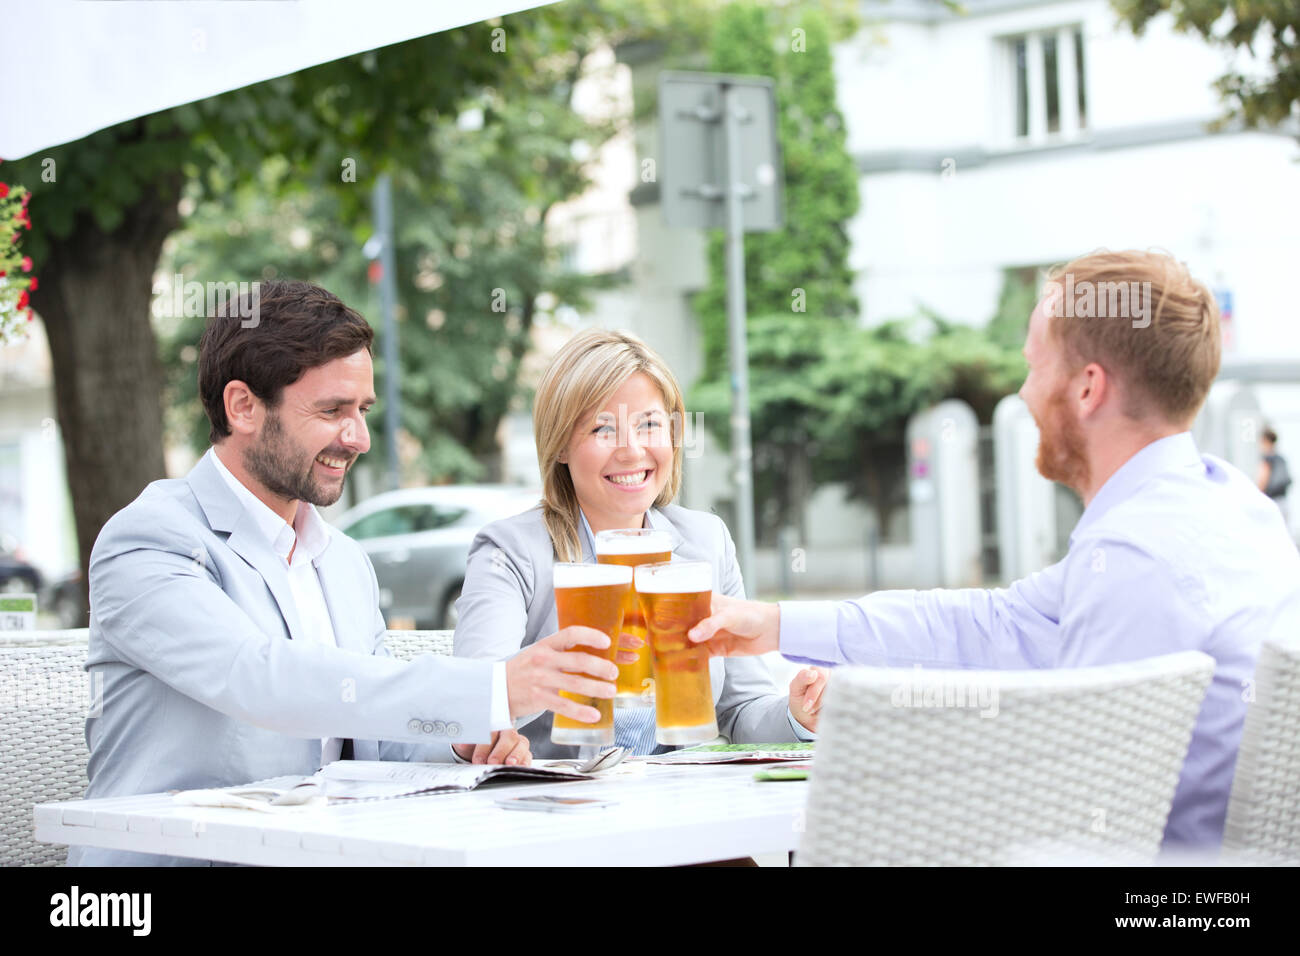 Happy businesspeople toasting beer glasses at outdoor restaurant - Stock Image